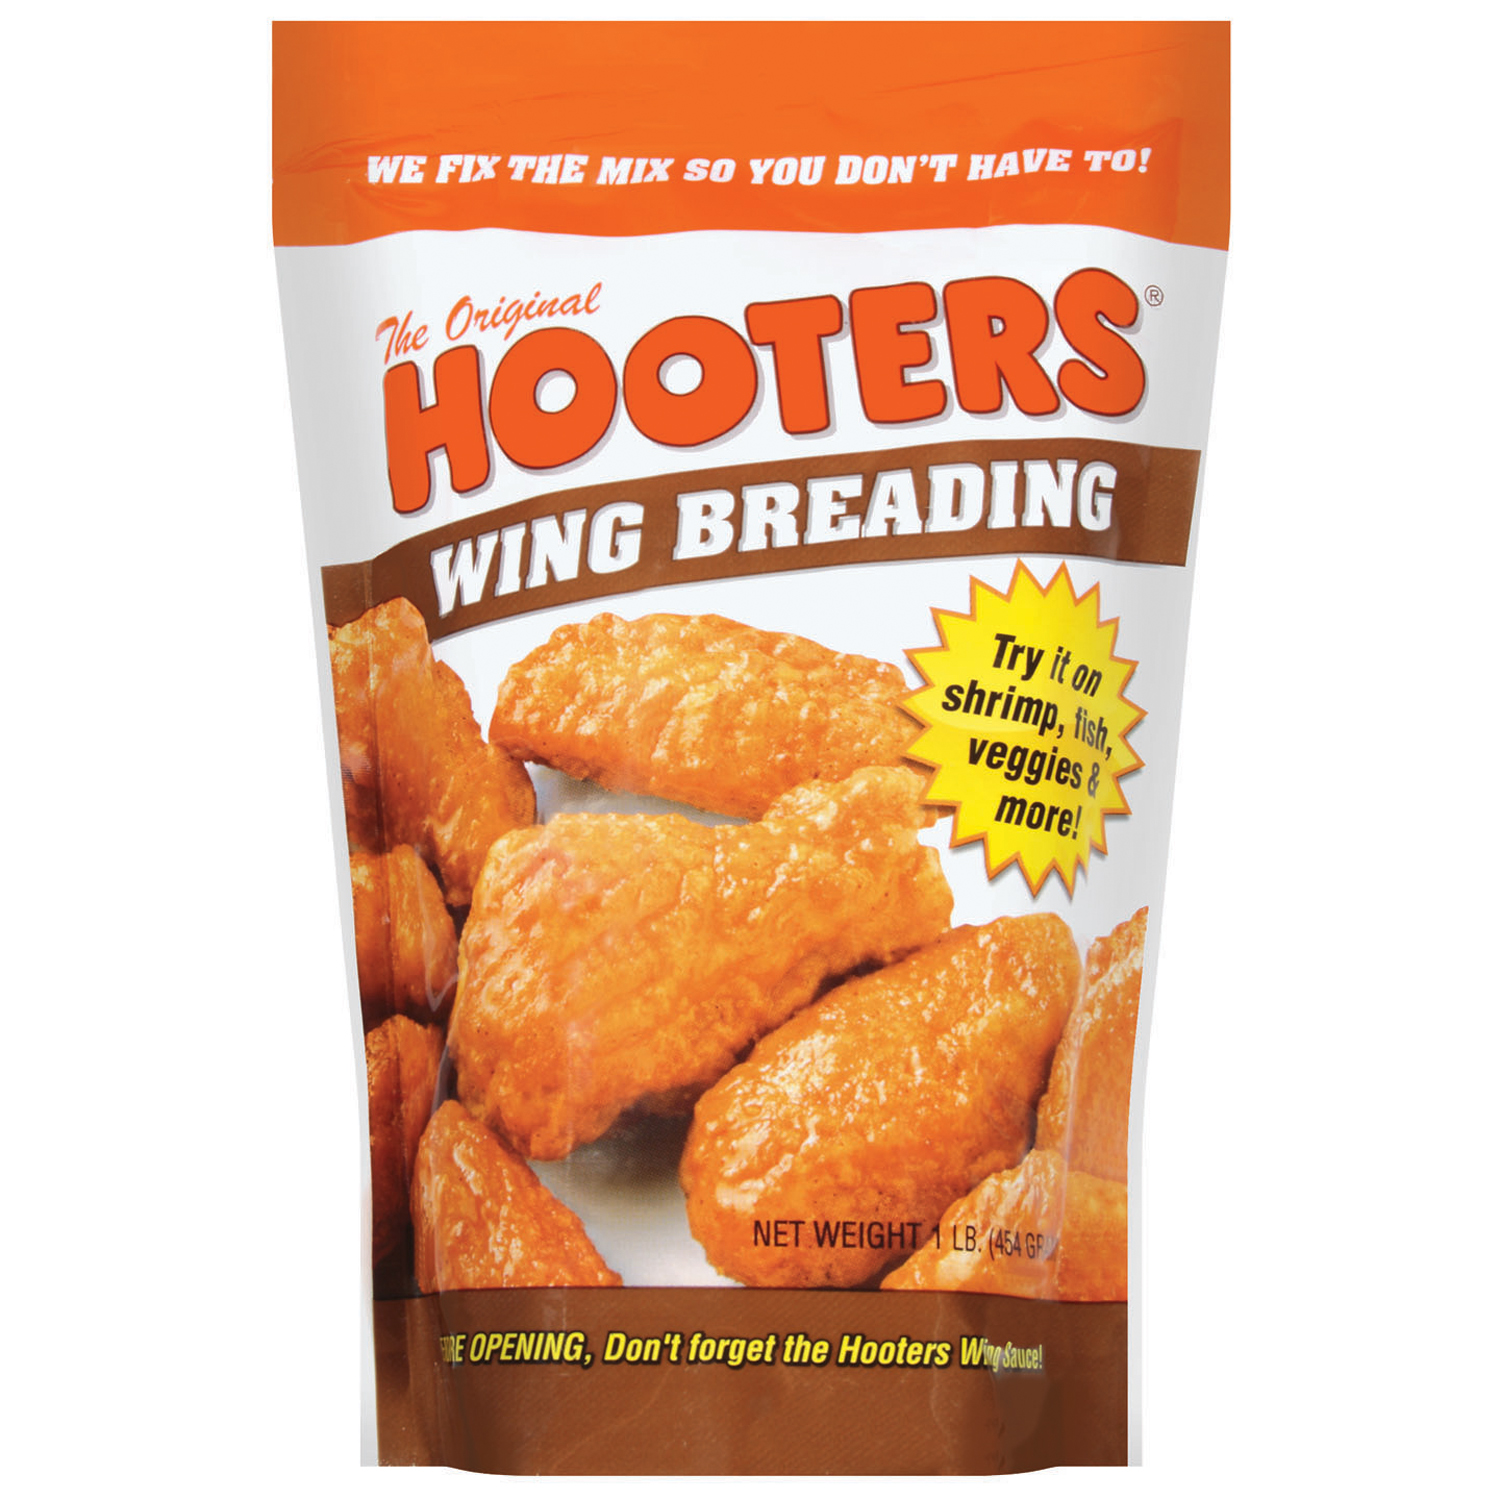 Hooters Wing Breading, 1 lb